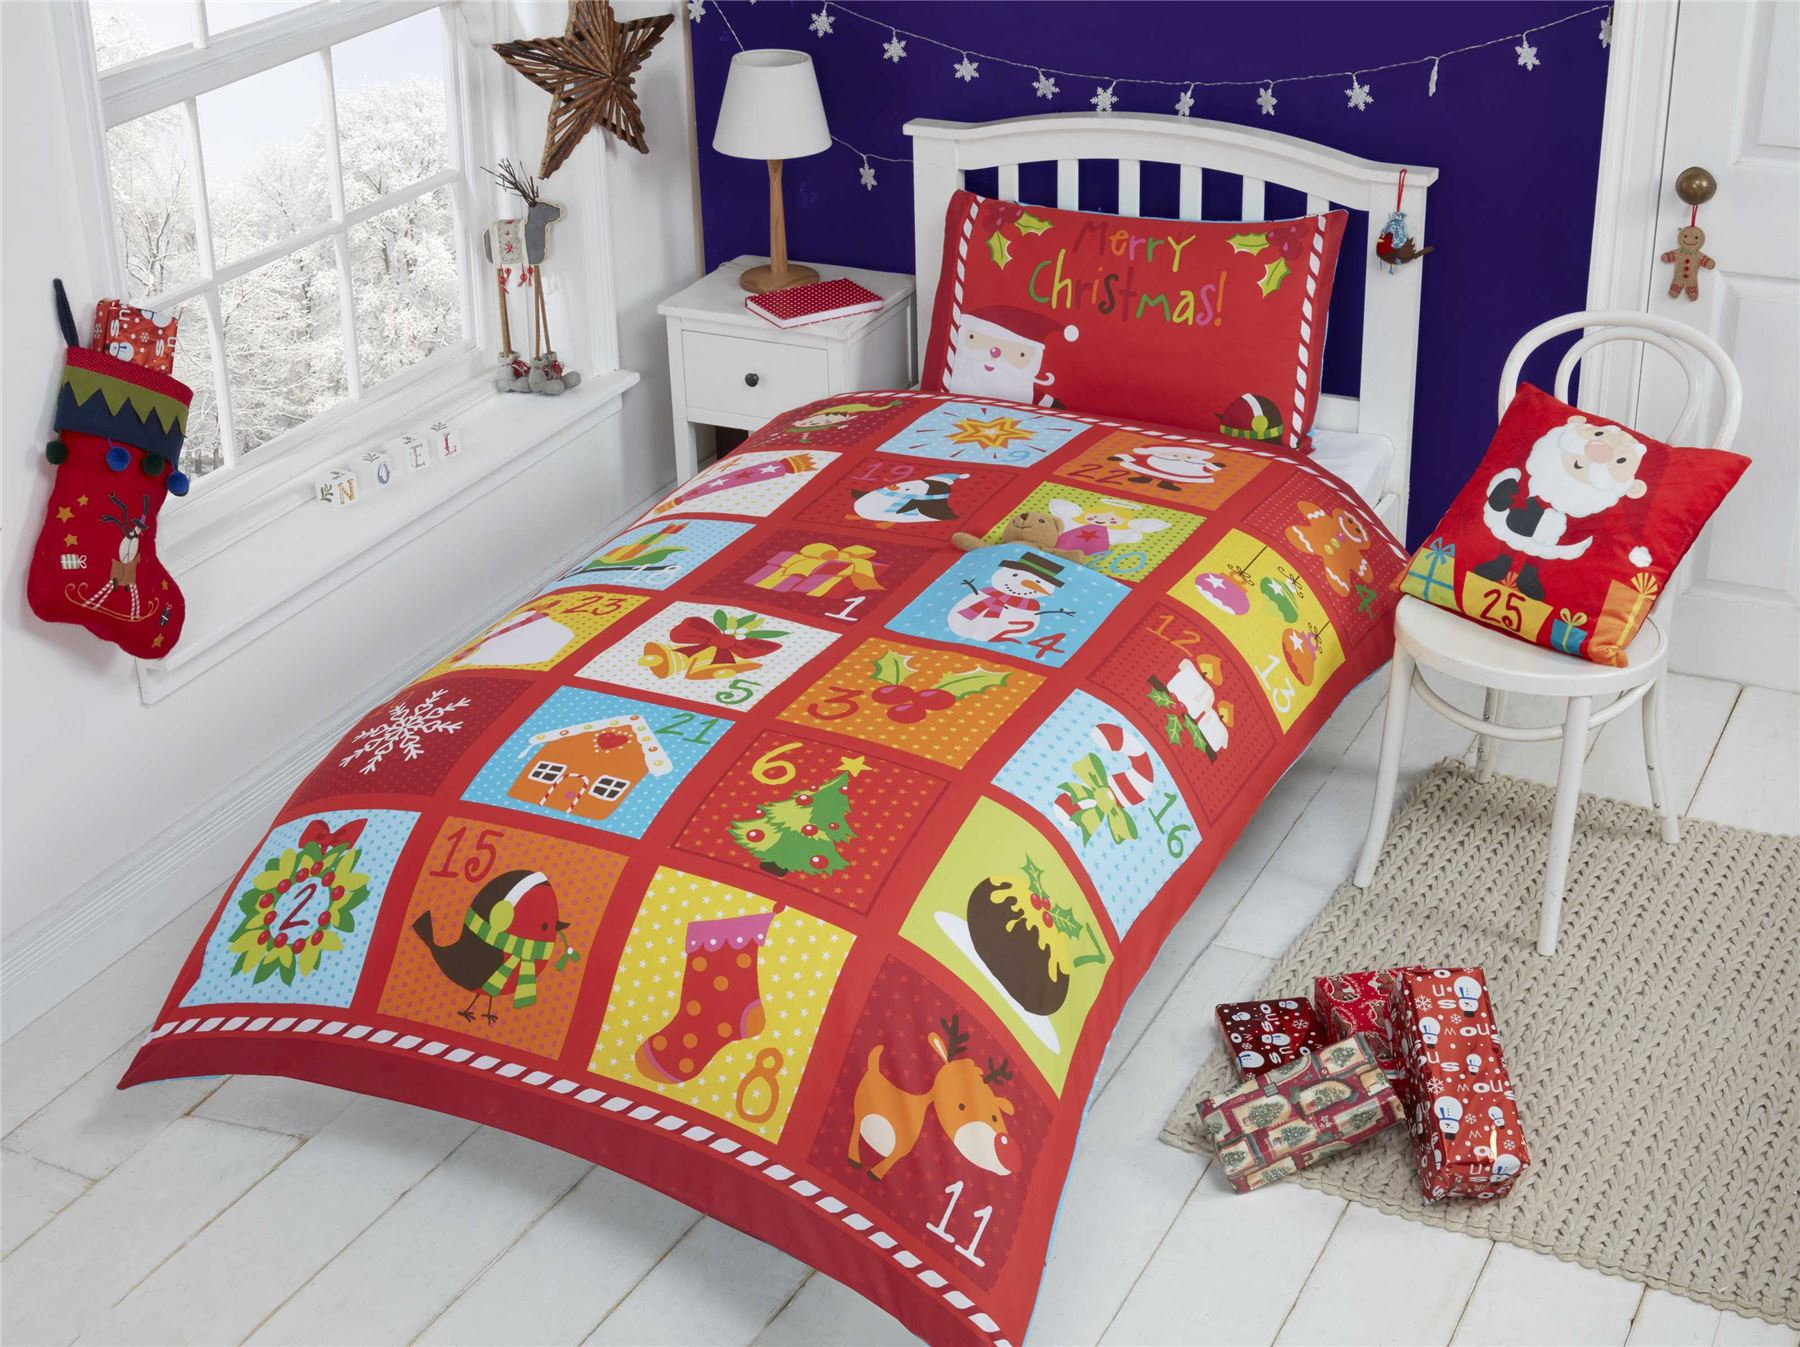 Christmas Kids Quilt Duvet Cover Bedding Bed Sets 5 Sizes Festive ... : kids quilt - Adamdwight.com